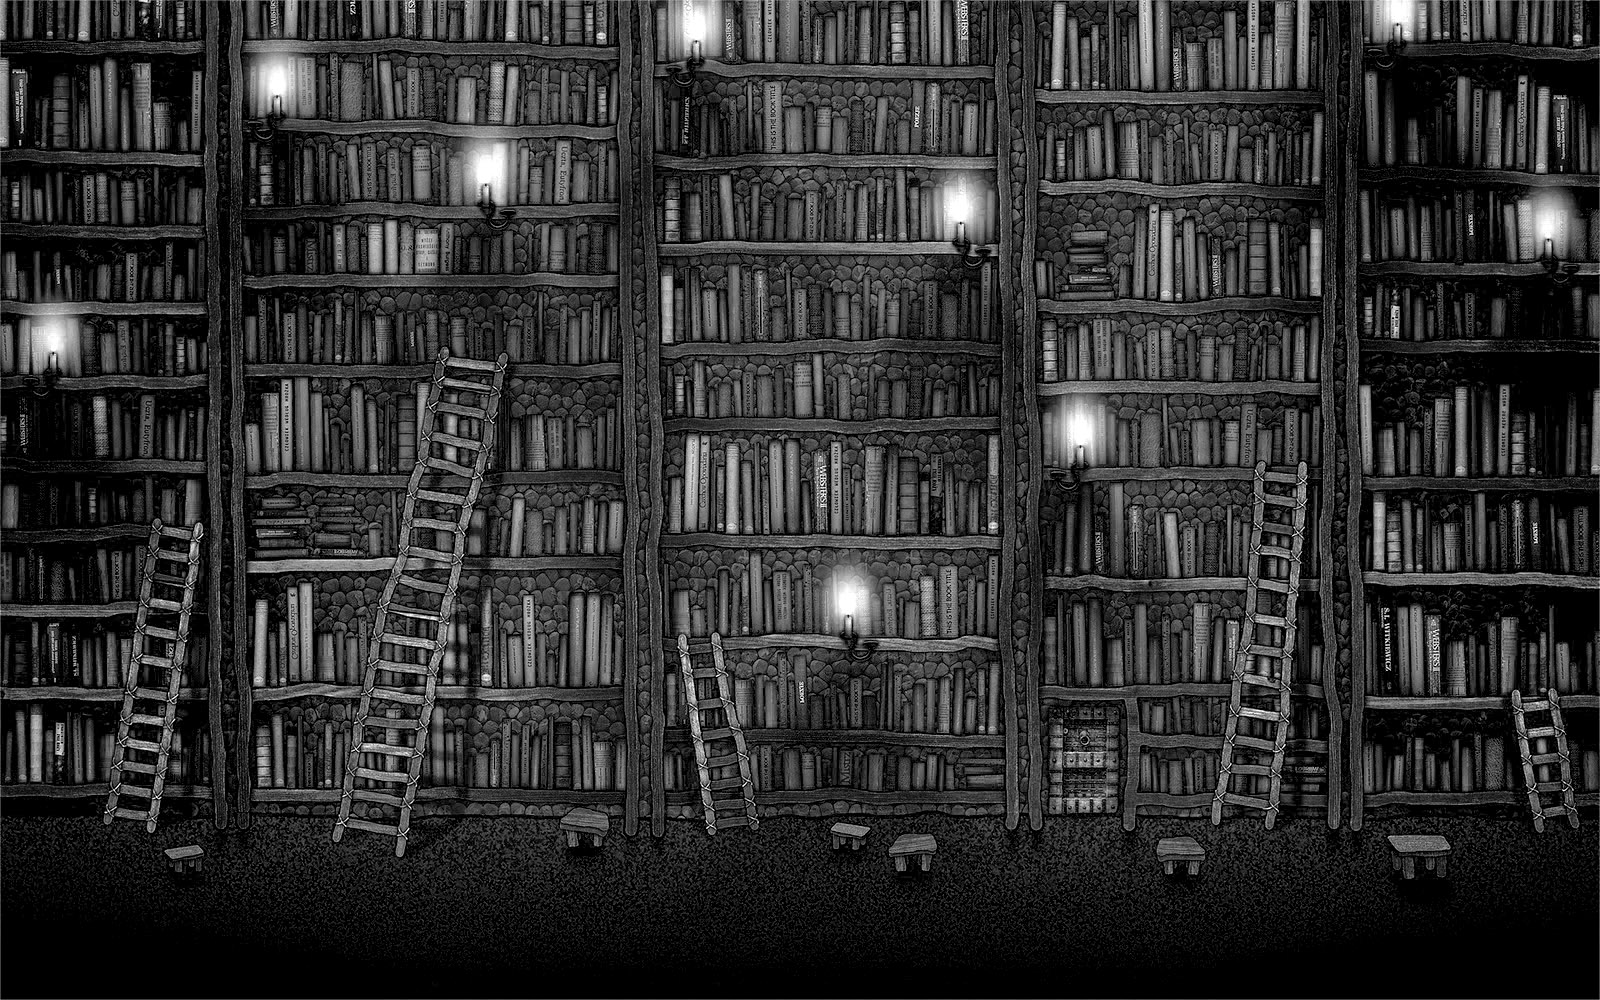 Free Download Library Bookshelf Wallpaper 1600x1000 For